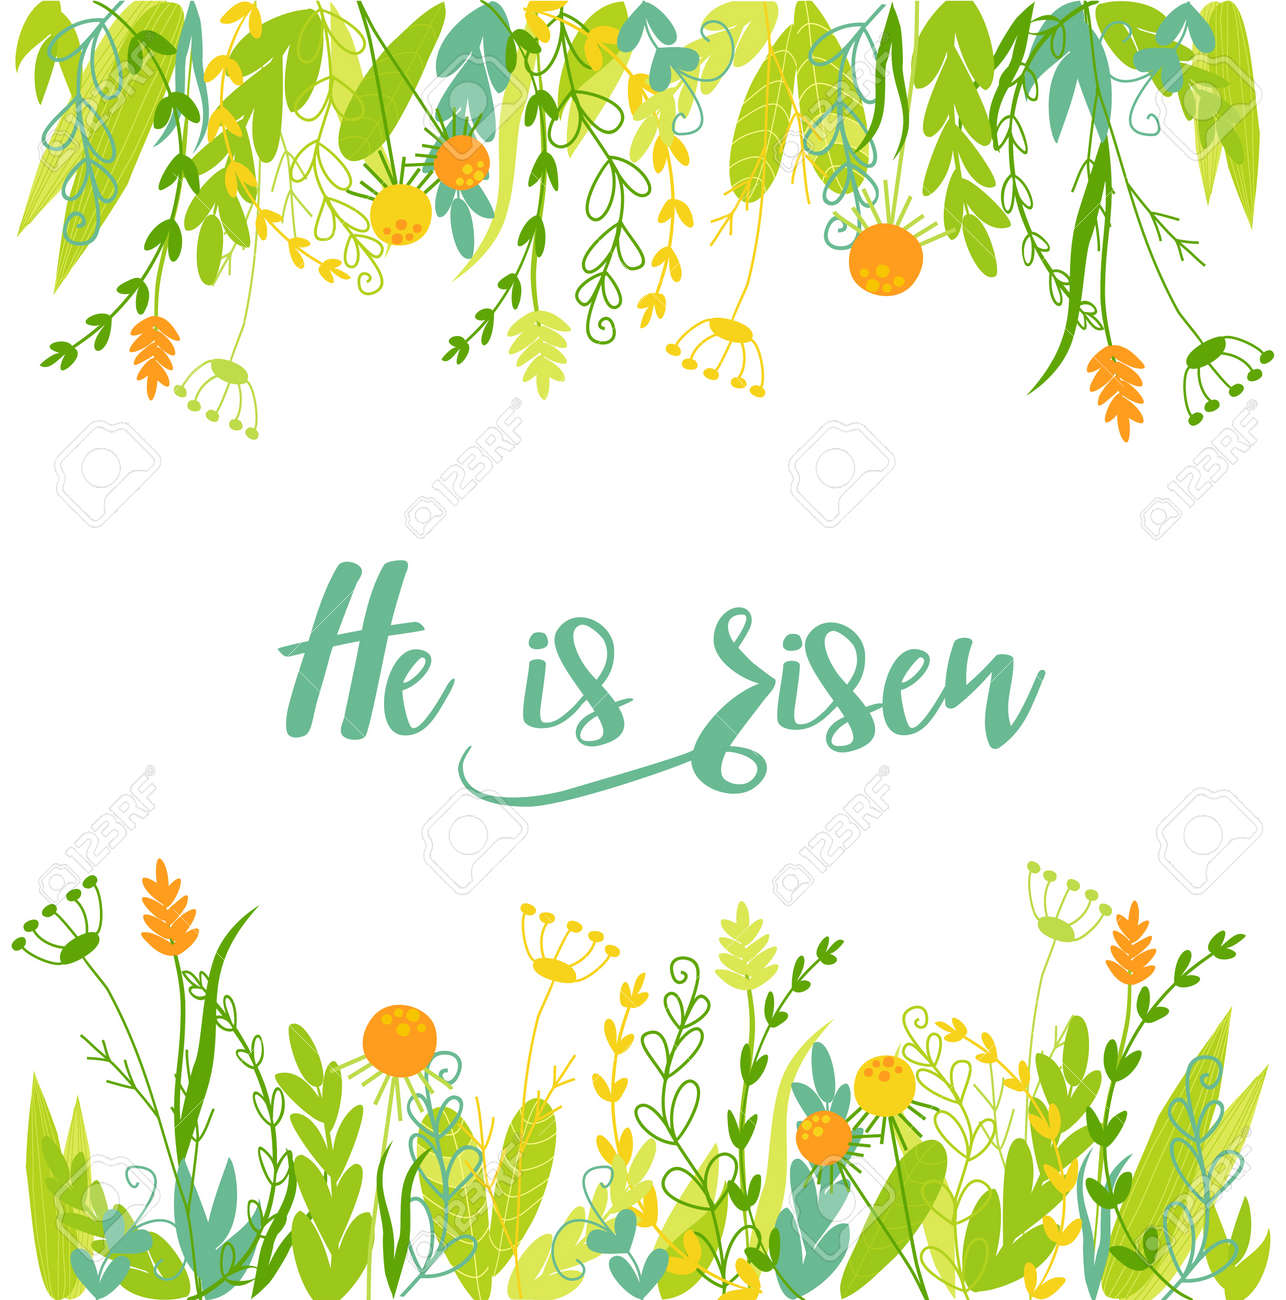 Easter christian card with flowers and text. - 158422163